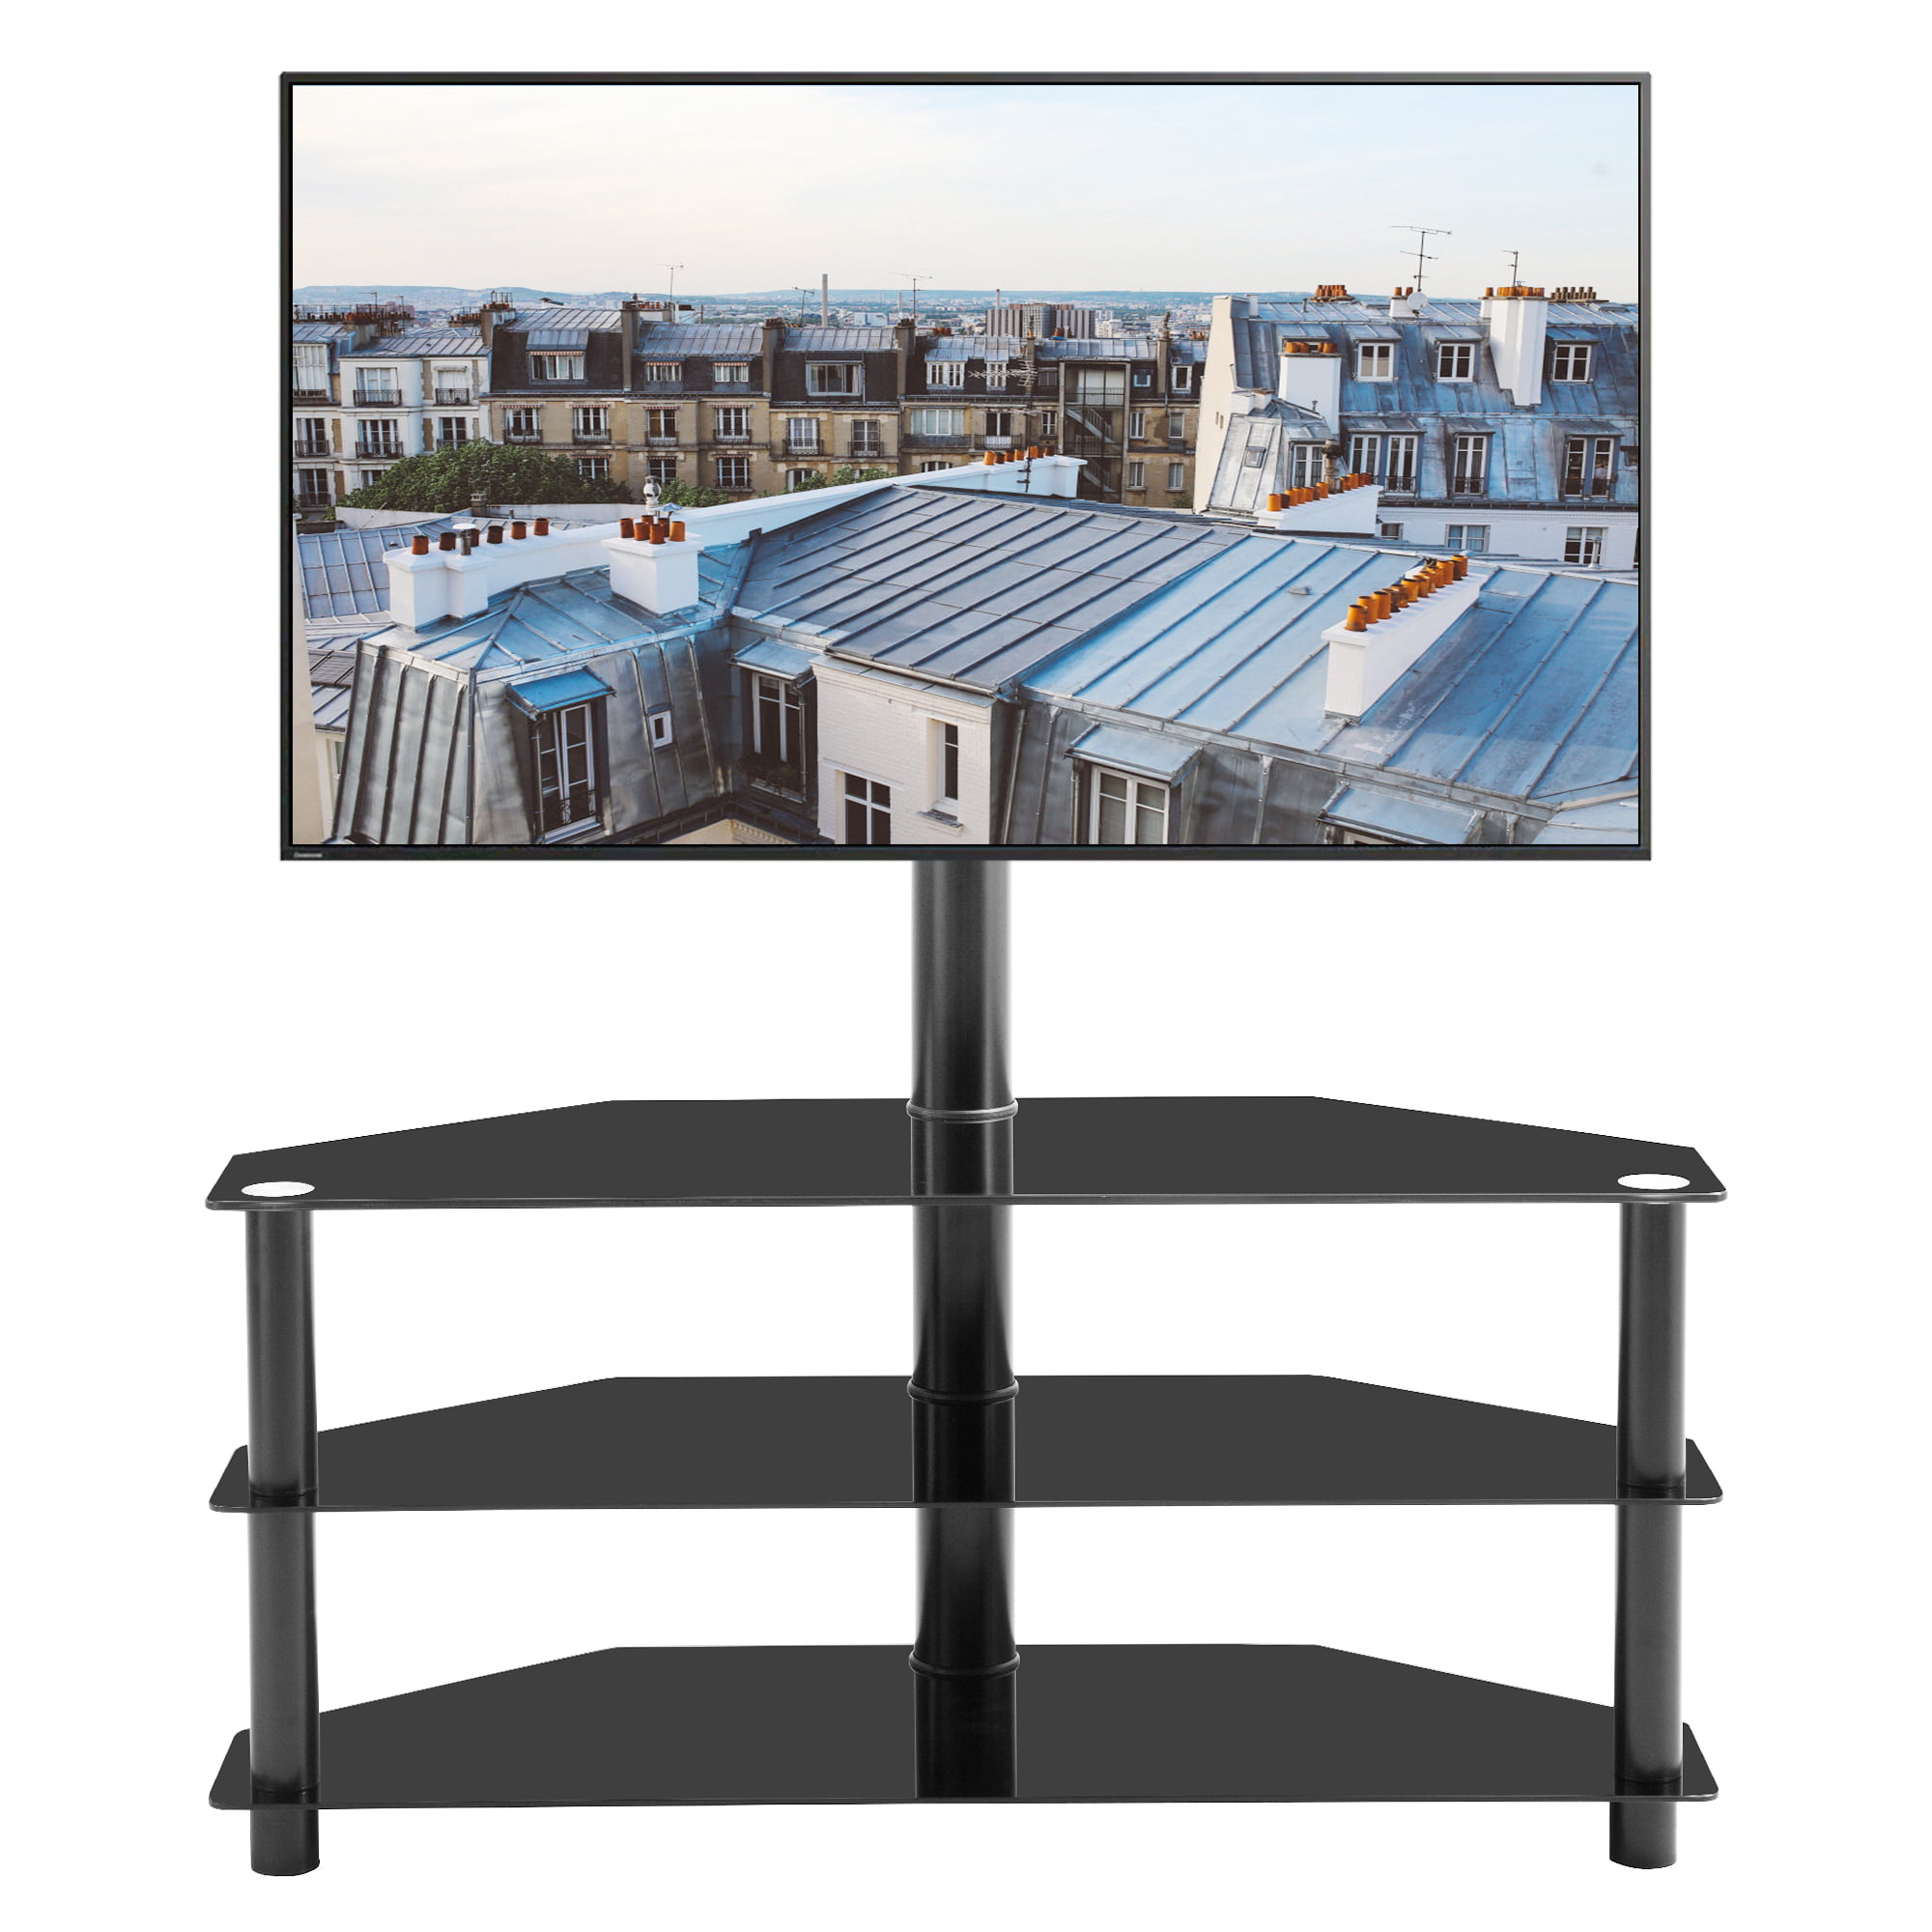 Picture of: Corner Tv Stand 3 Tier Glass Tv Stand For 32 65 Inch Lcd Led Tv Entertainment Center With Storage Shelves Swivel Mount Media Console Table Living Room Office Home Tv Cabinet W8638